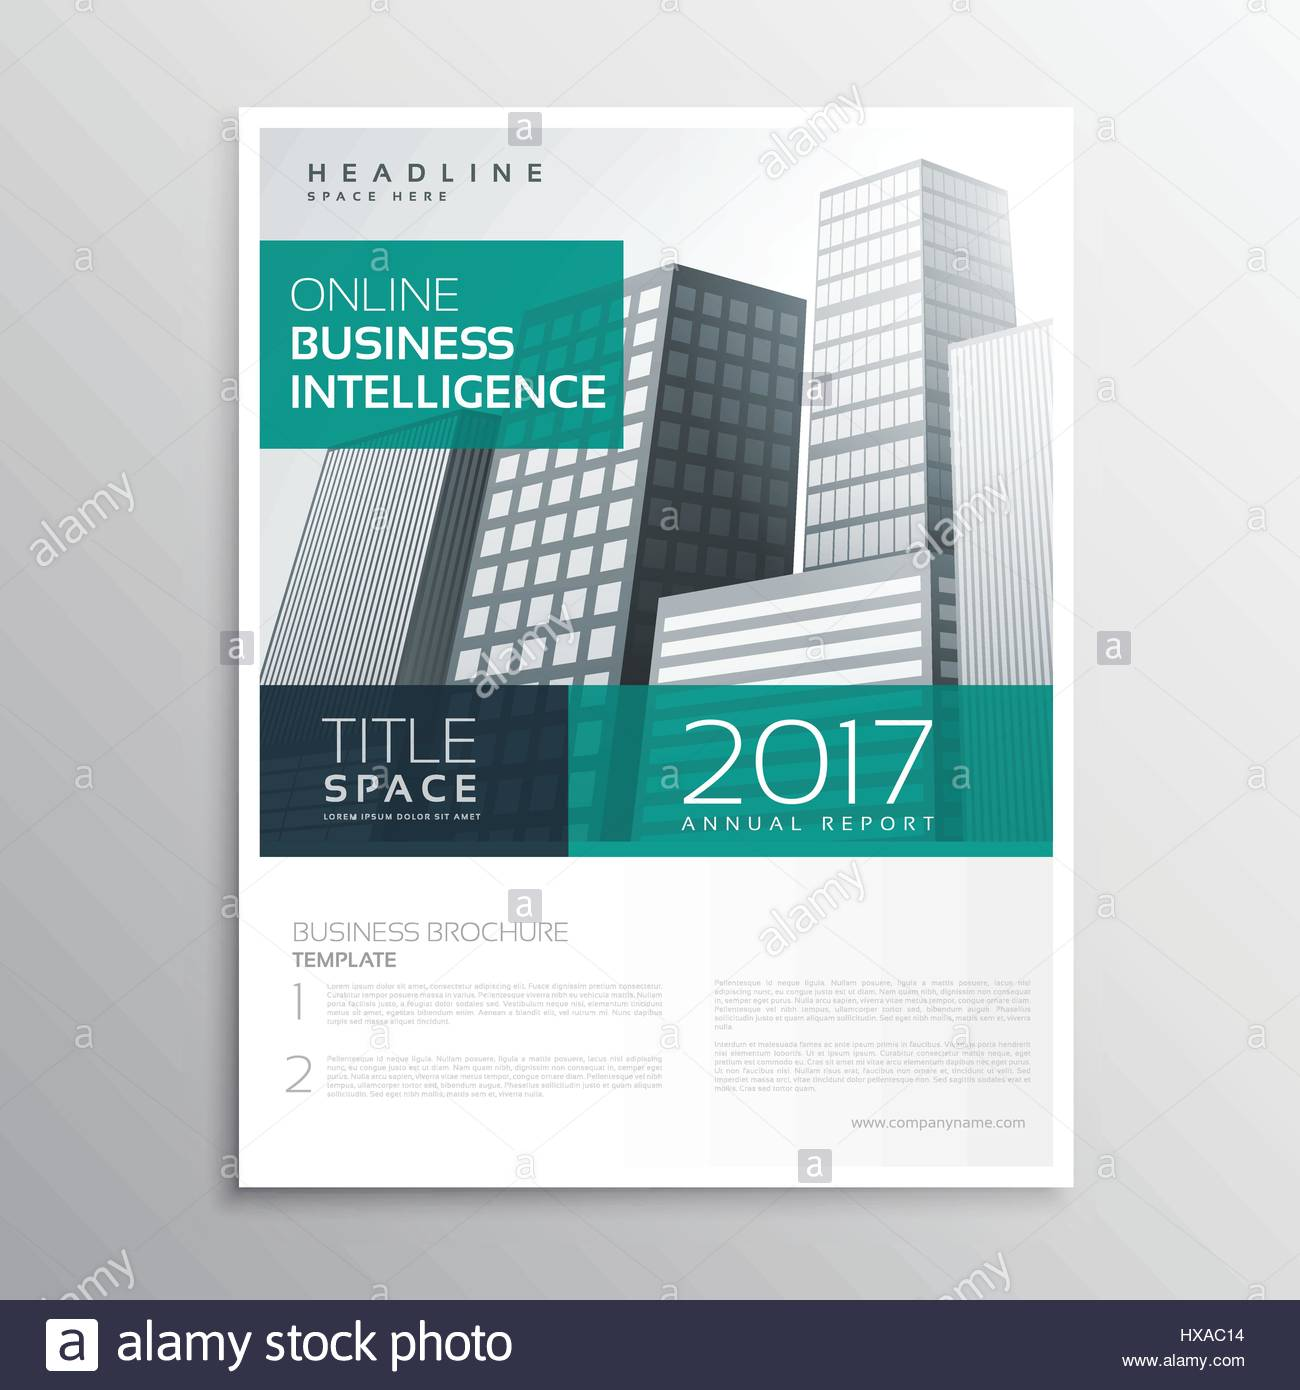 Company Business Brochure Template Design With Buildings In A - A4 brochure template